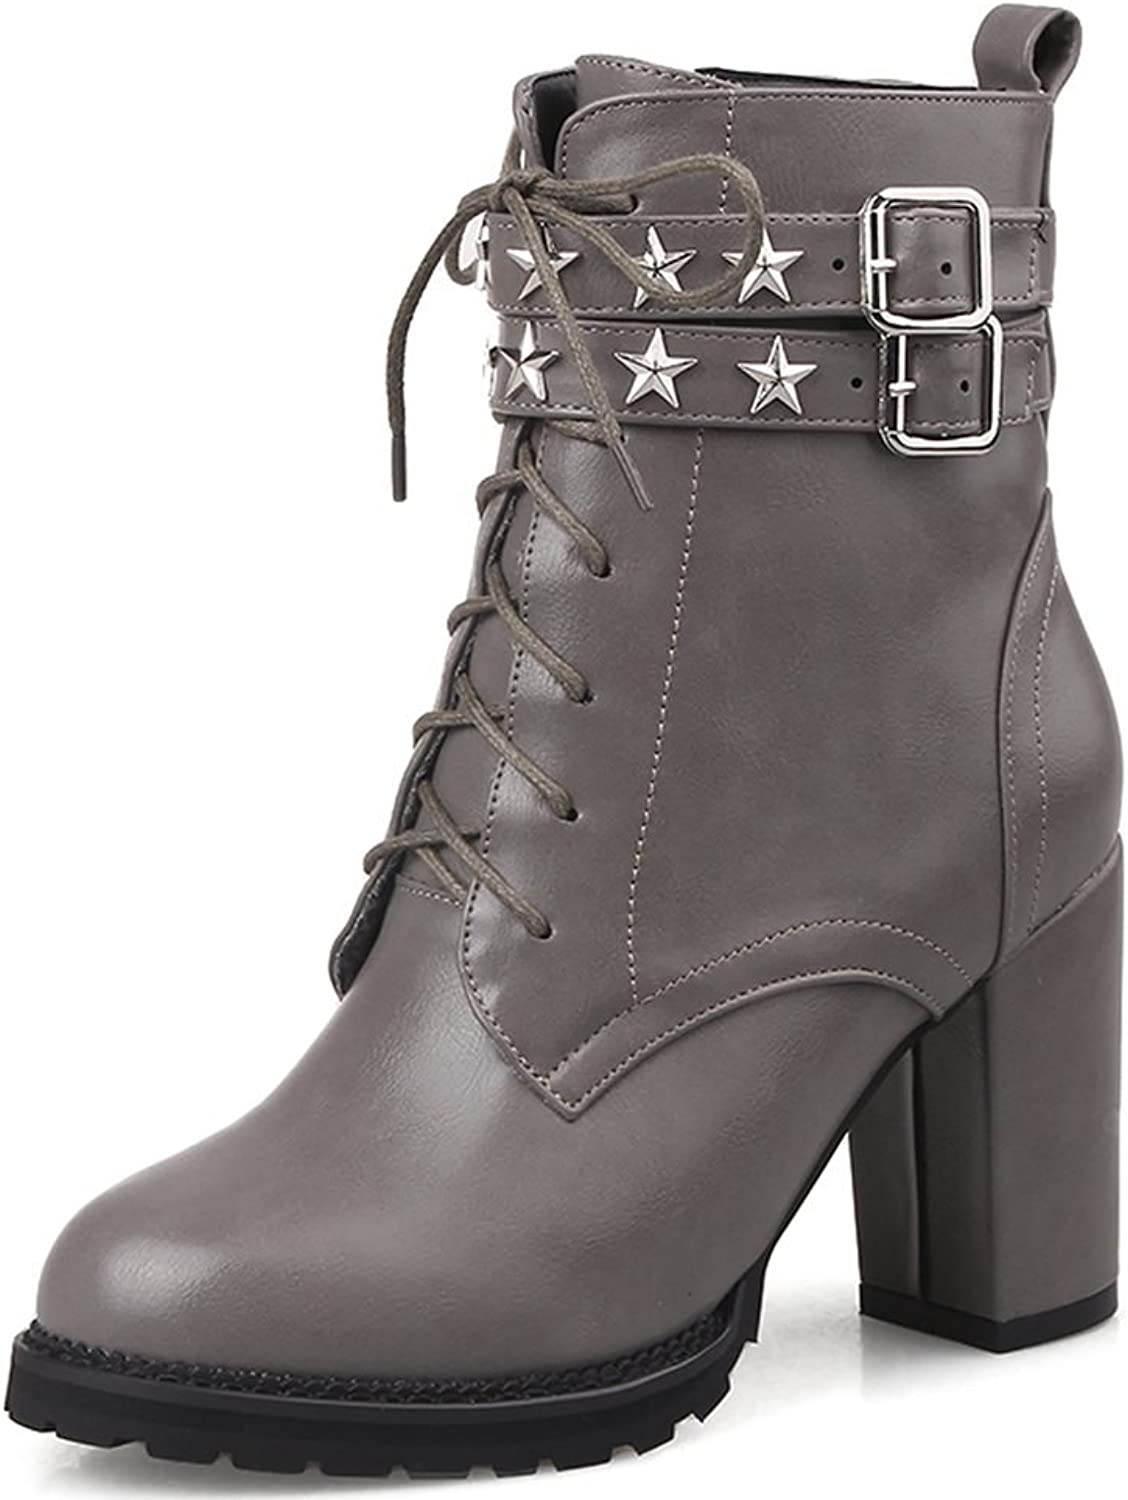 SaraIris Buckle Star Decoration Cross-Tied Zipper Ankle Boots for Women